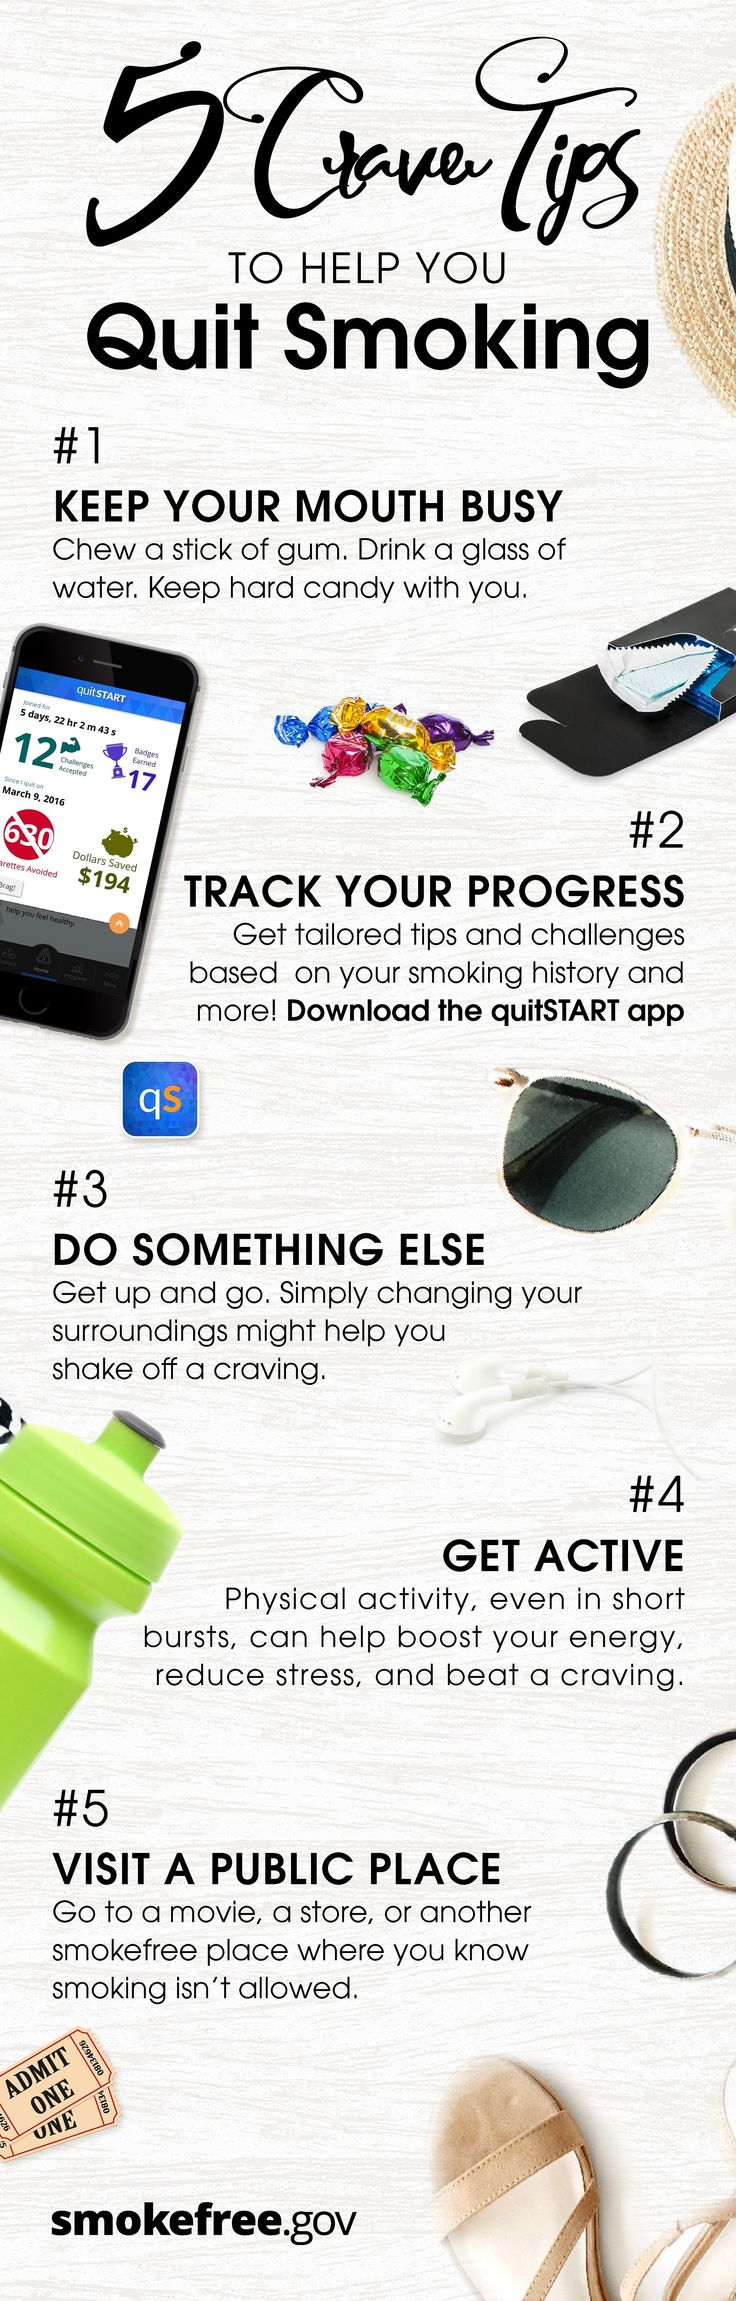 Crave Tip: Track it! Tracking your progress can help you stay motivated. Make sure to download the QuitStart app and follow these 5 tips to begin your #Smokefree journey now!